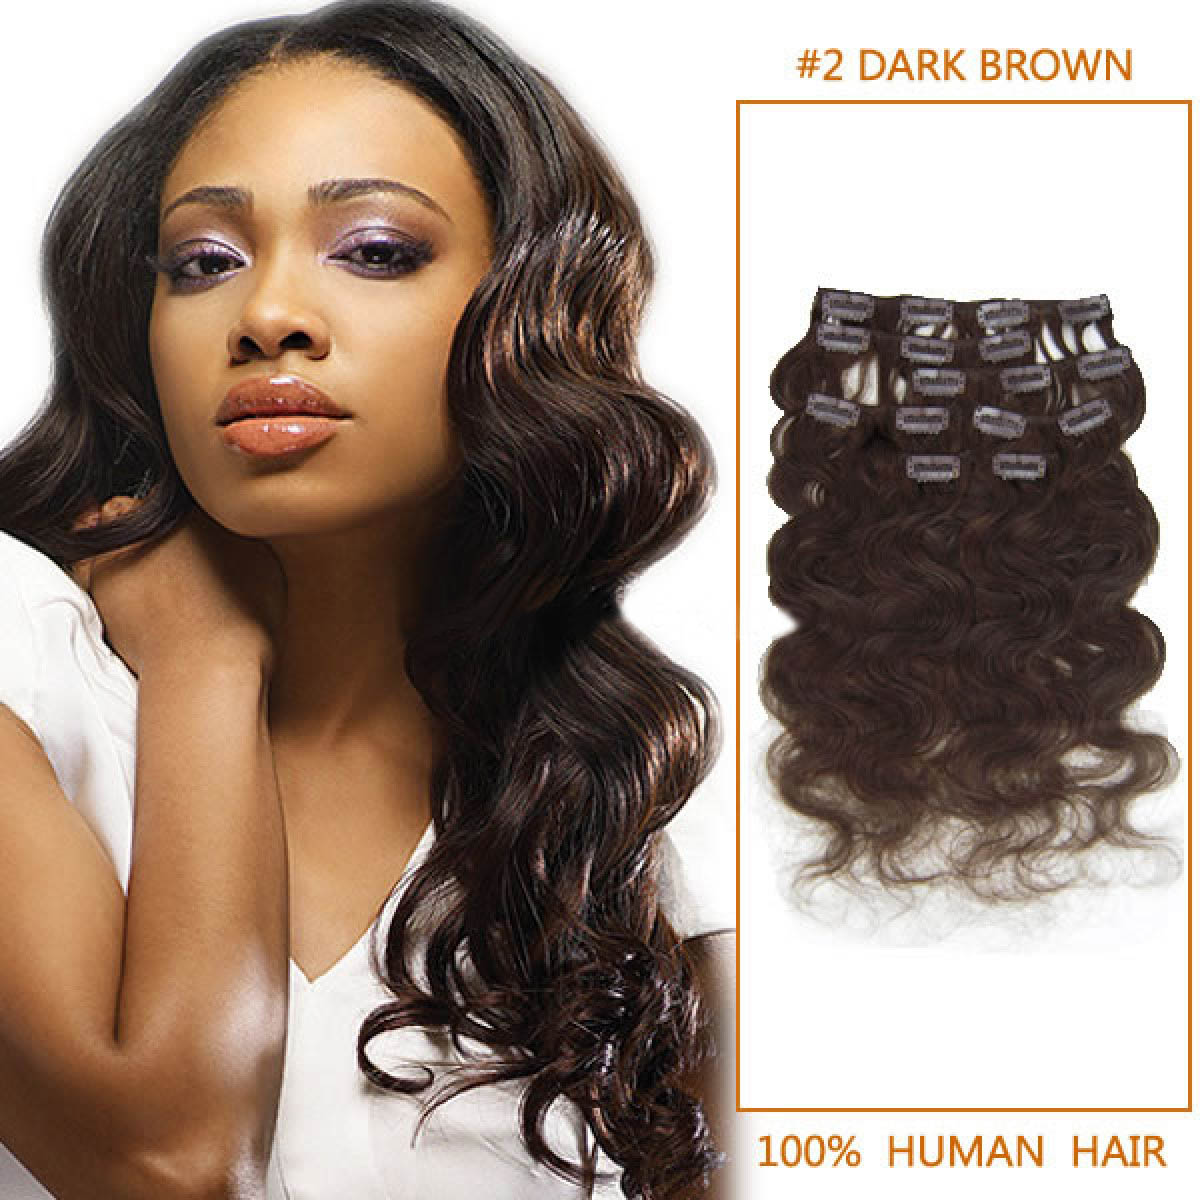 20 Inch 2 Dark Brown Wavy Clip In Human Hair Extensions 10pcs